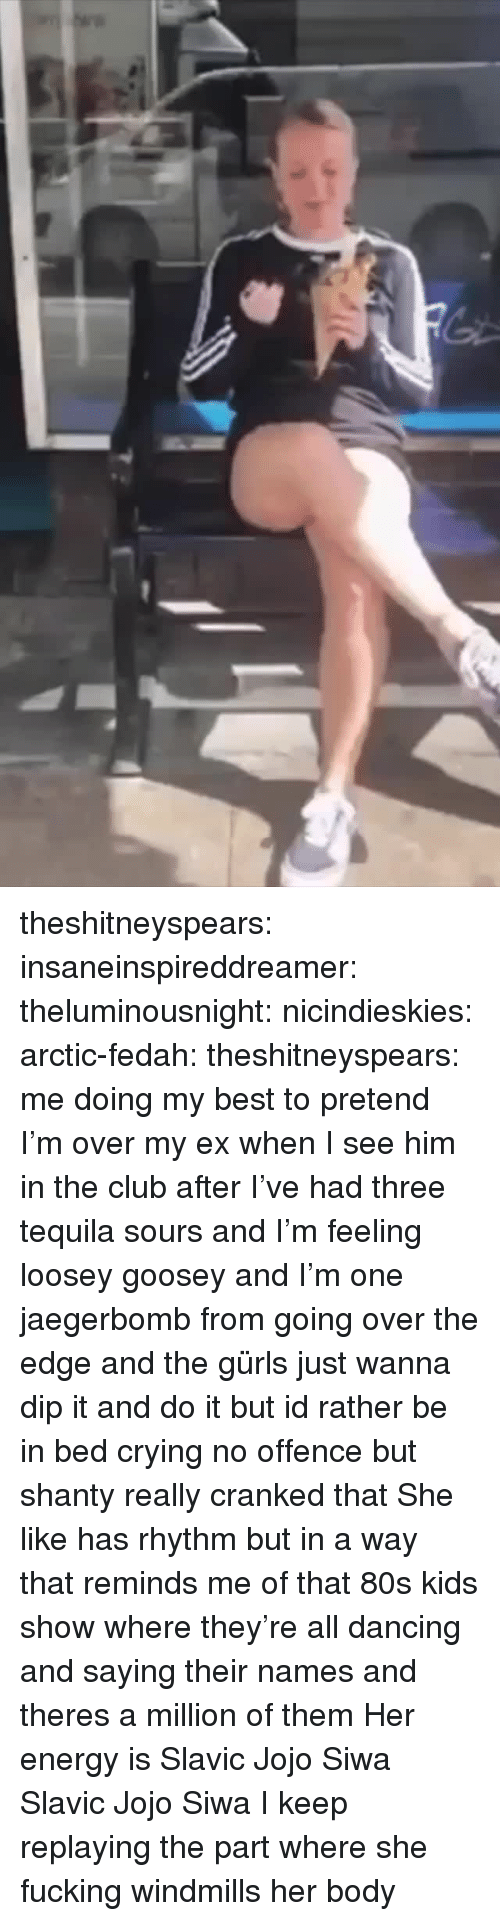 80s, Club, and Crying: theshitneyspears: insaneinspireddreamer:   theluminousnight:   nicindieskies:  arctic-fedah:   theshitneyspears:  me doing my best to pretend I'm over my ex when I see him in the club after I've had three tequila sours and I'm feeling loosey goosey and I'm one jaegerbomb from going over the edge and the gürls just wanna dip it and do it but id rather be in bed crying  no offence but shanty really cranked that   She like has rhythm but in a way that reminds me of that 80s kids show where they're all dancing and saying their names and theres a million of them  Her energy is Slavic Jojo Siwa   Slavic Jojo Siwa   I keep replaying the part where she fucking windmills her body